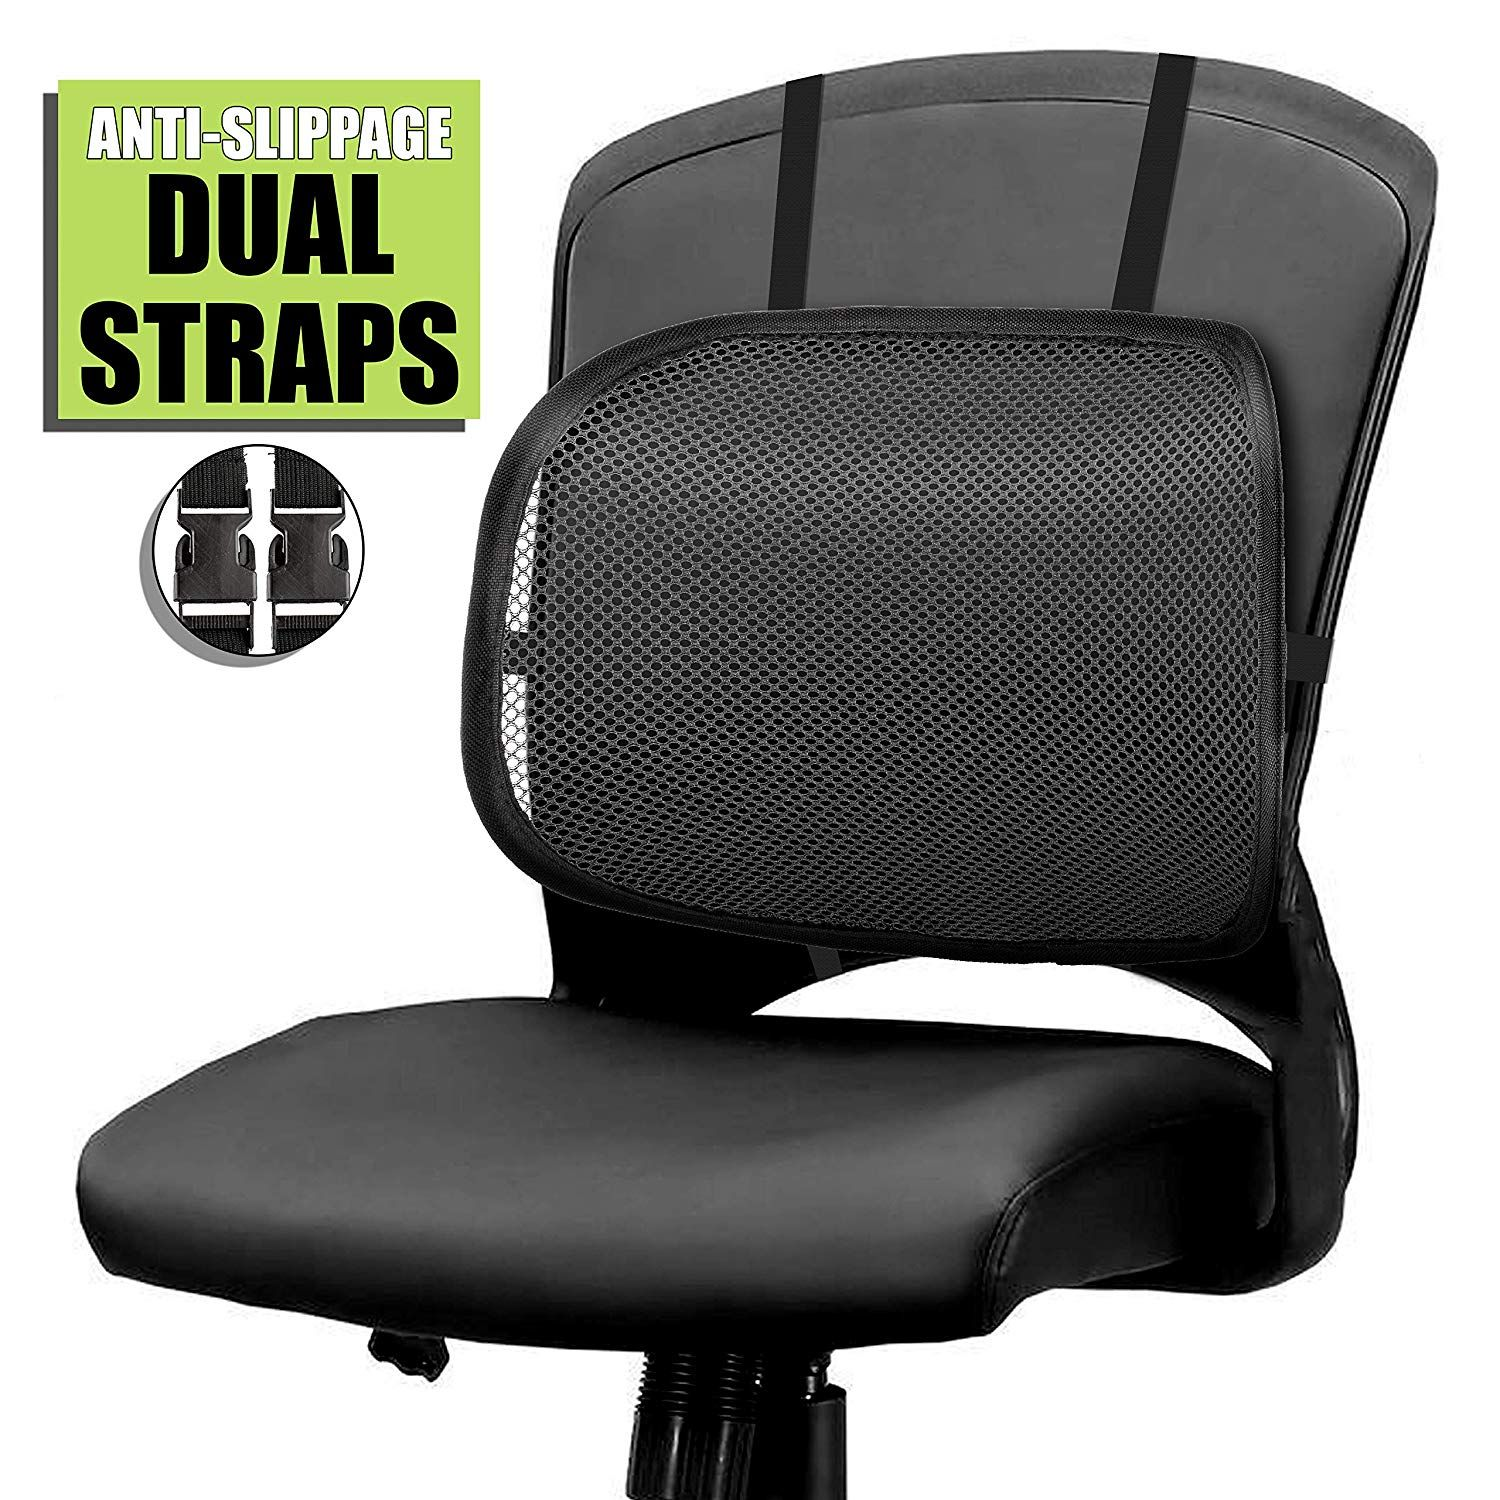 Back Support Office Chair Storiestrending Com Office Chair Ergonomic Chair Office Chair Back Support